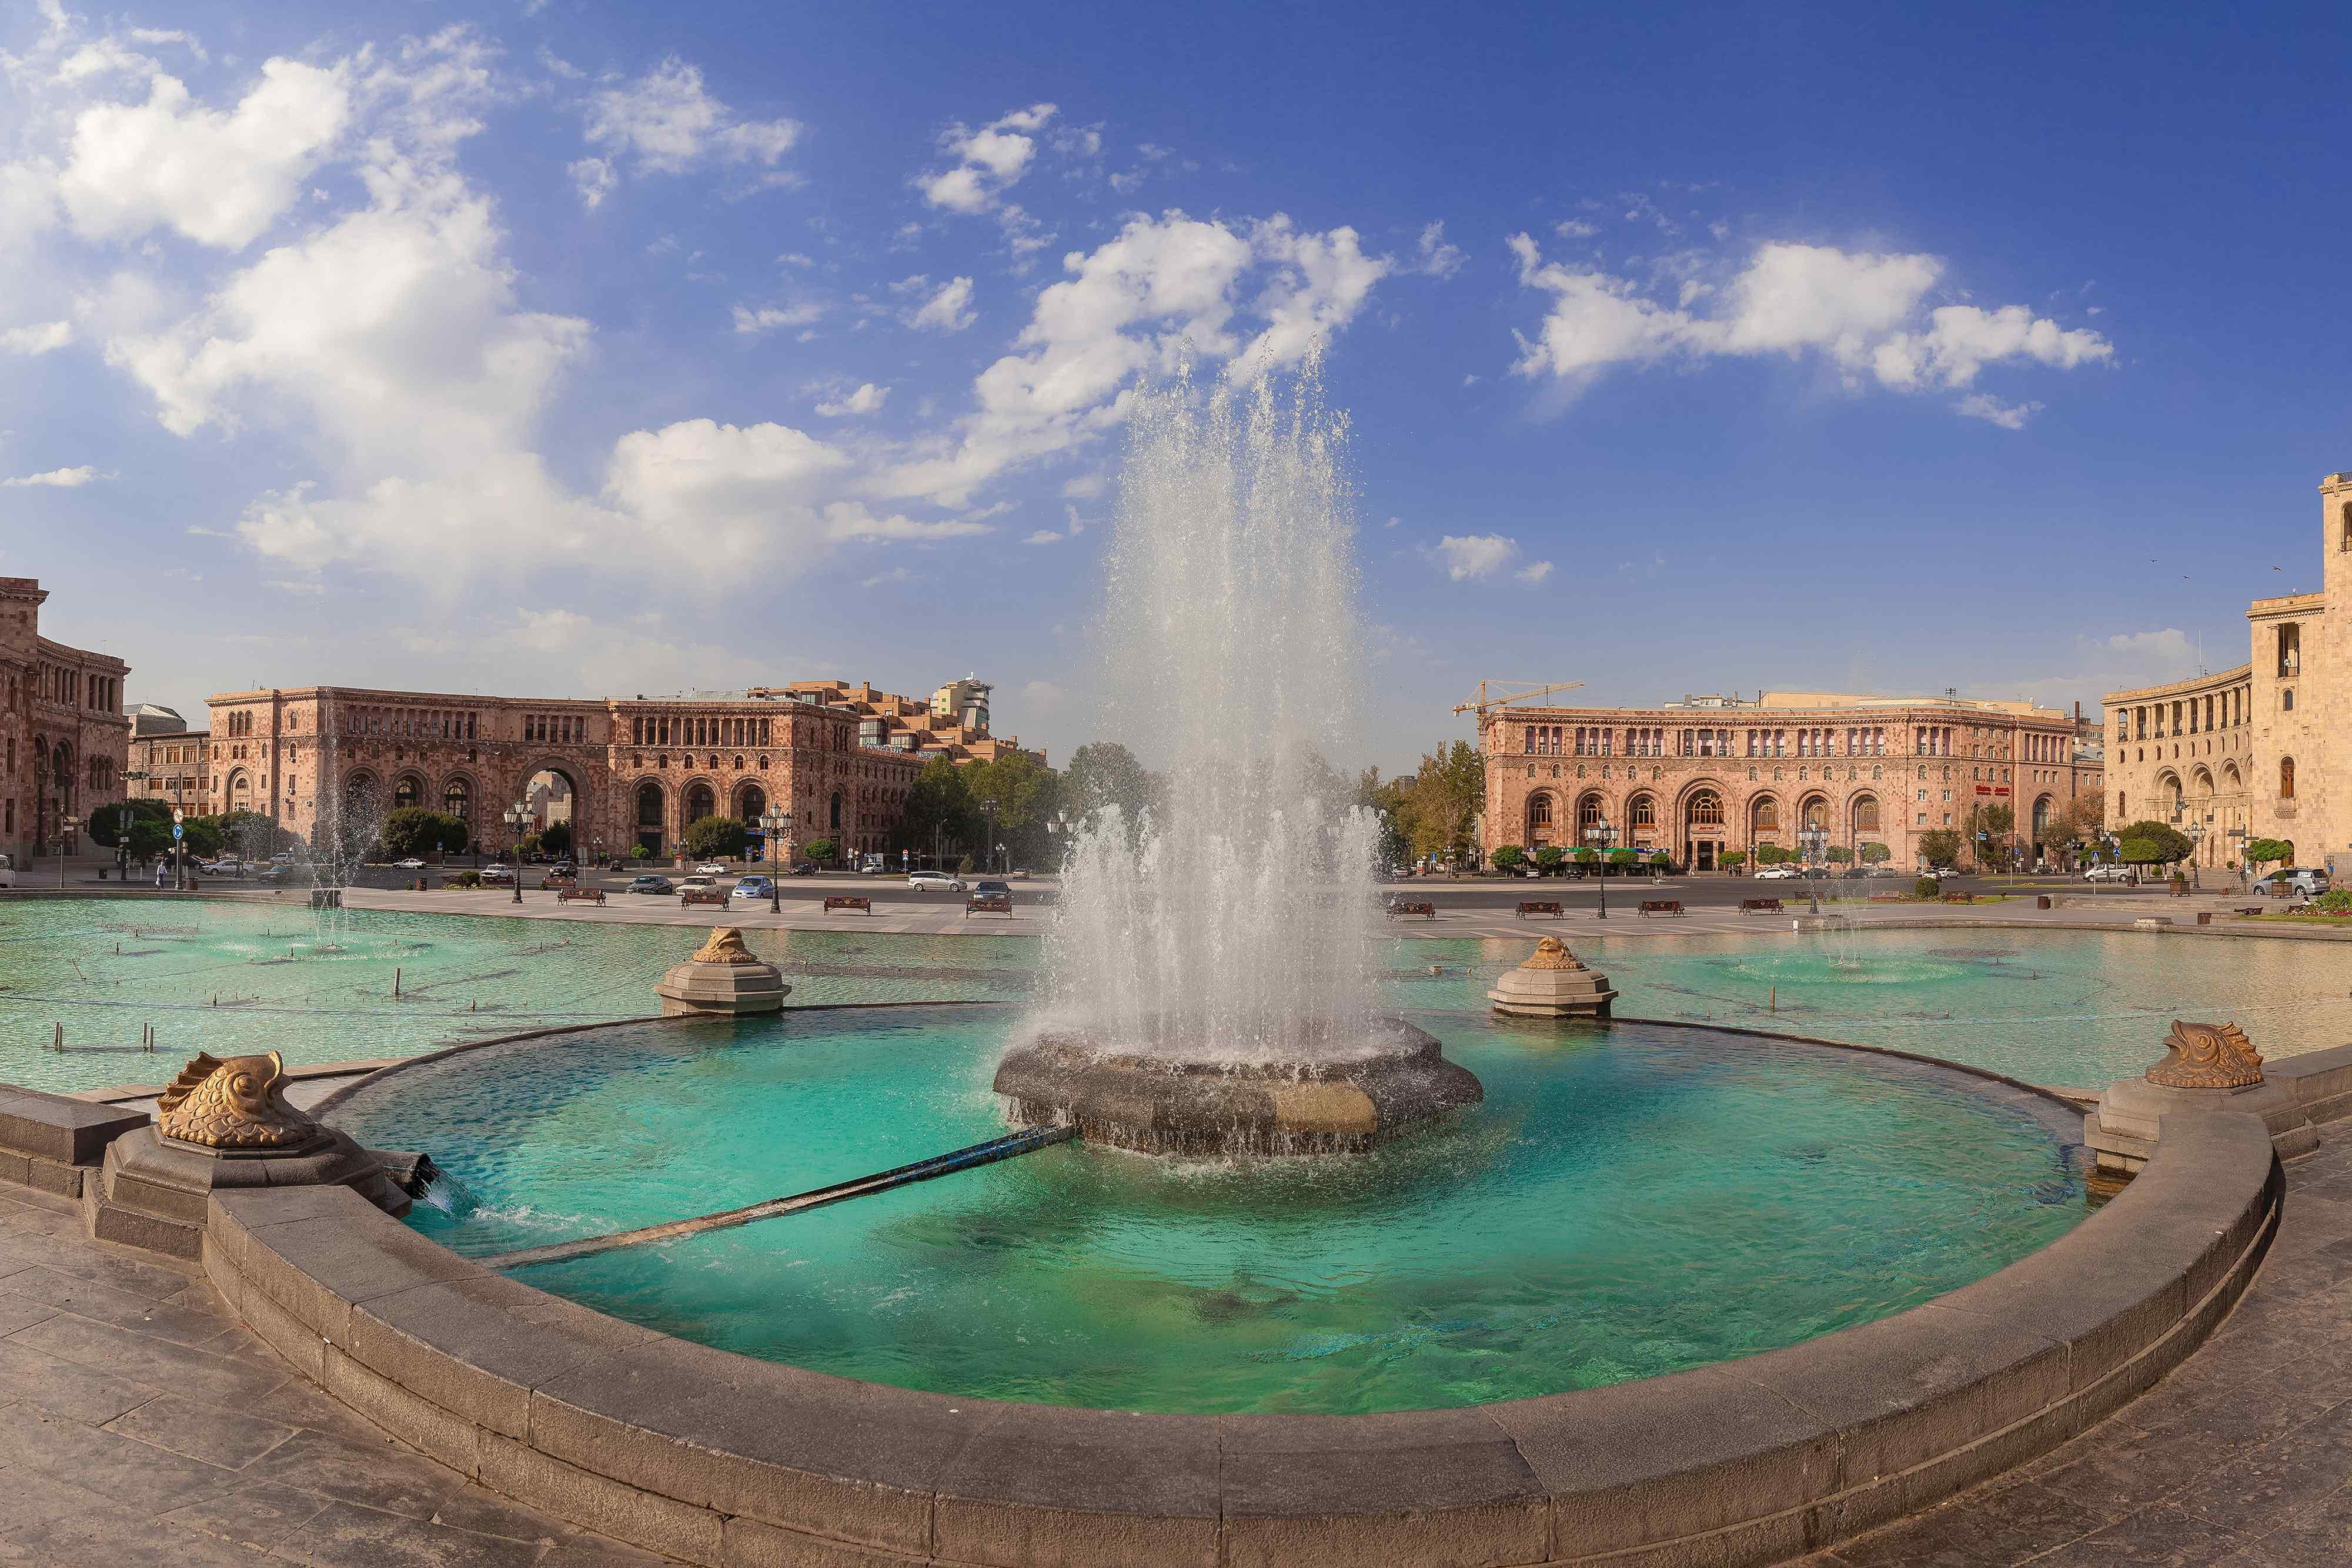 Built in 1970's Cascade is a huge stairway linking Yerevan center to the Haghtanak Park and the Monument Neighborhood. Inside the Cascade there is an escalator equal to the length of the complex. This